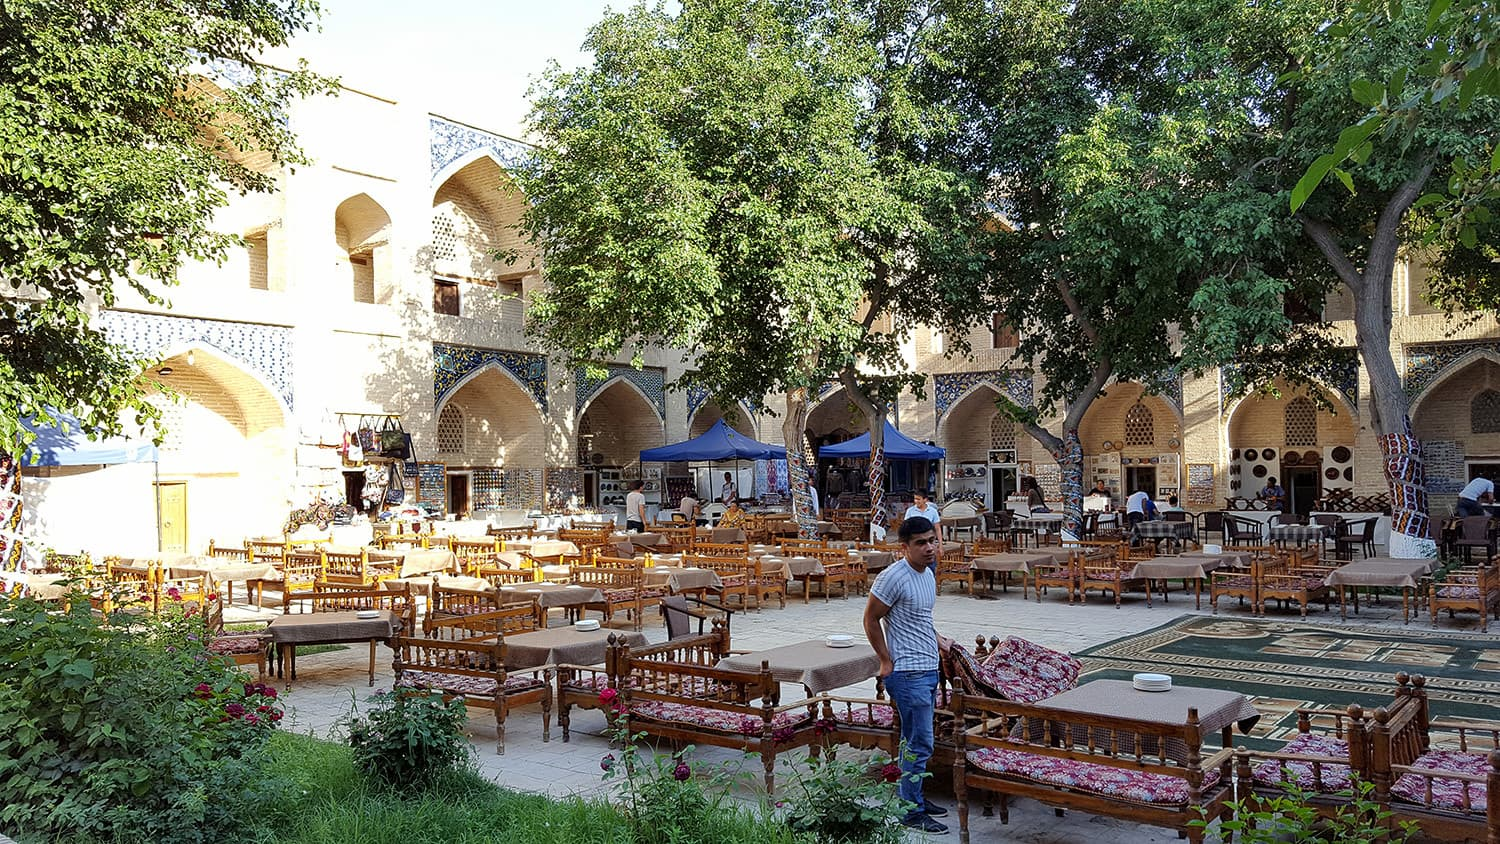 The courtyard of a madrassah in Bukhara converted into an open-air restaurant.